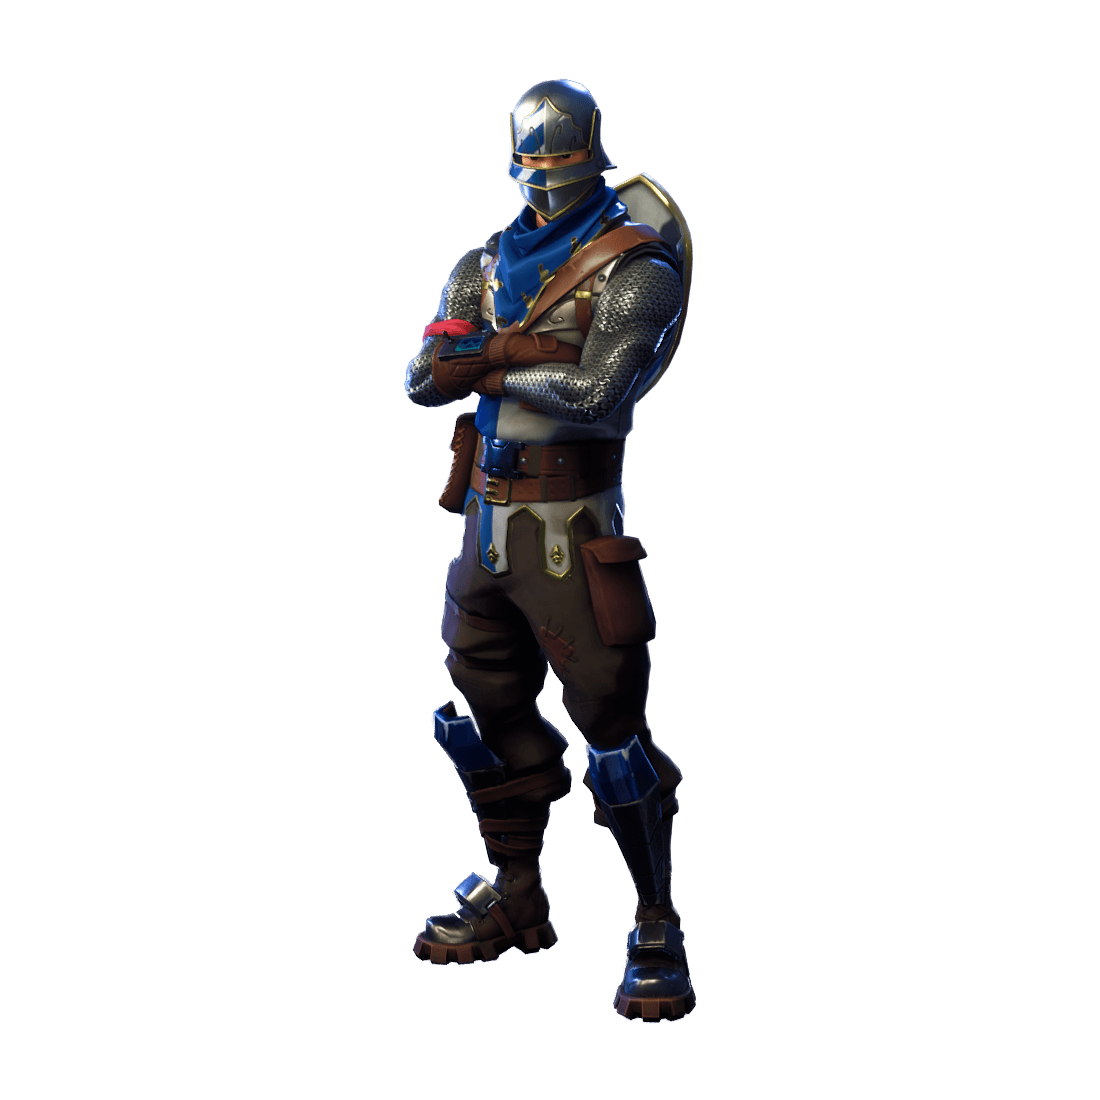 Blue Squire Fortnite Outfit Skin How to Get + Unlock | Fortnite Watch